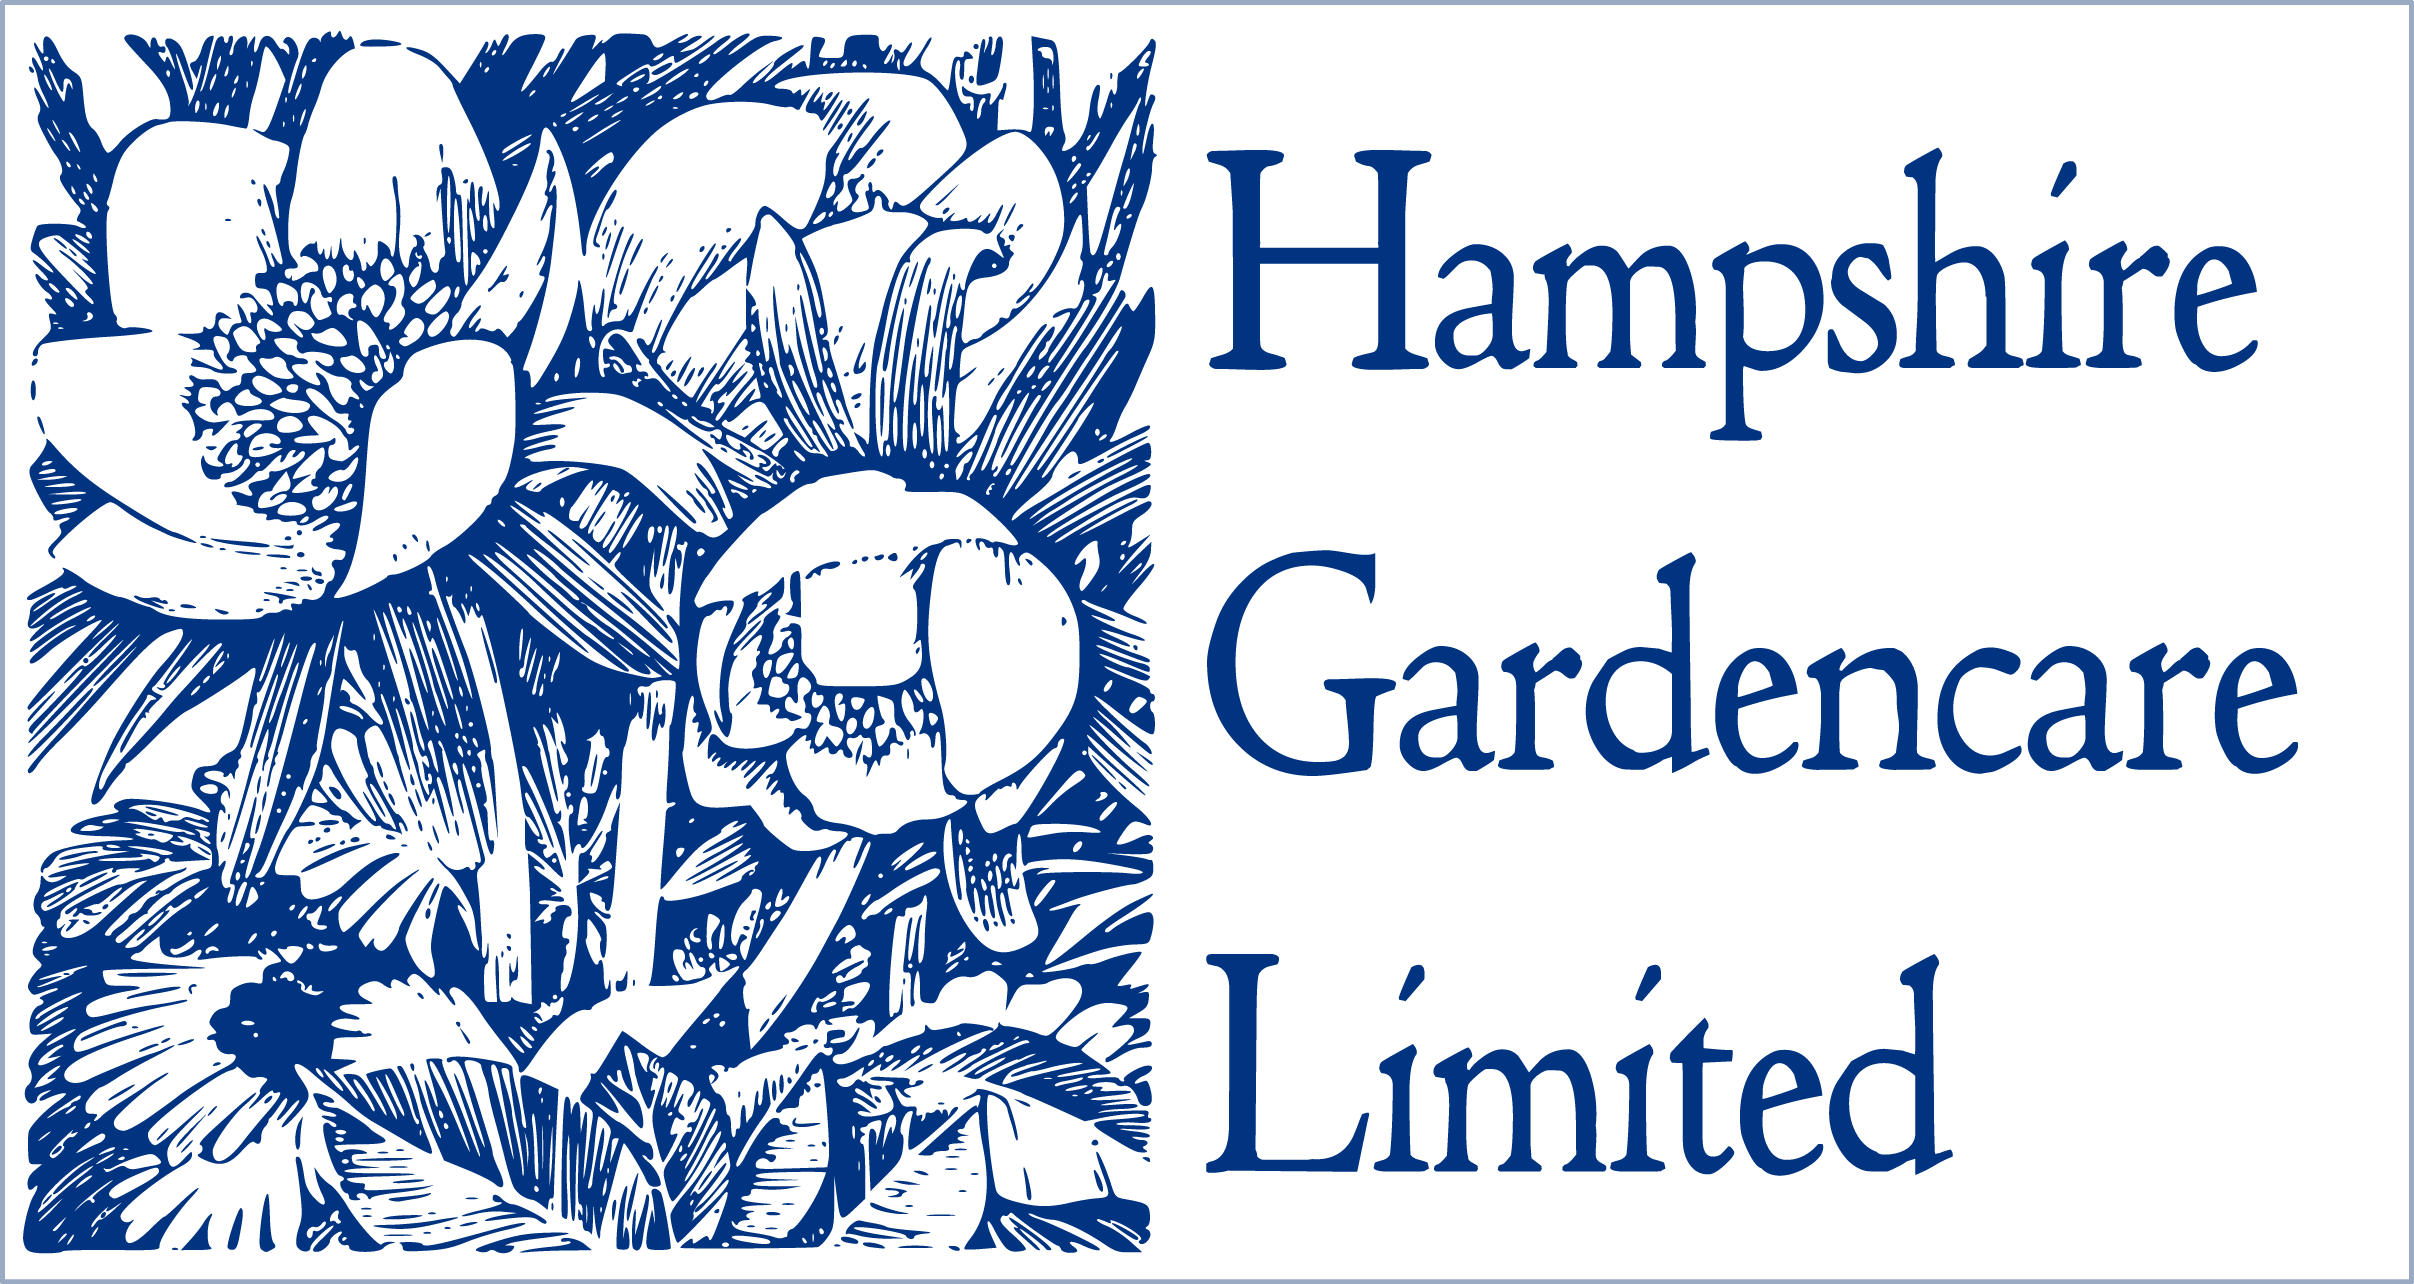 Hampshire Gardencare Limited